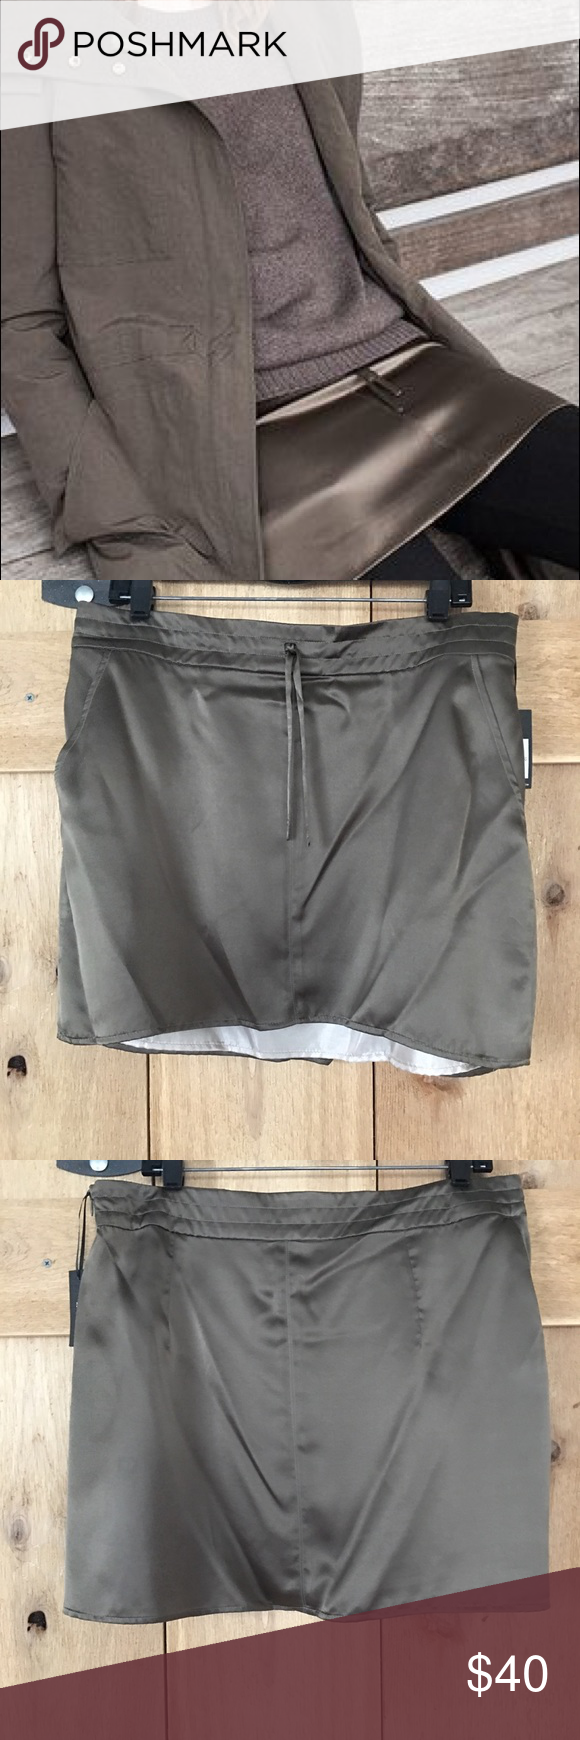 Emerson fry silk layering skirt, green size 12 Pretty layering skirt, Olive grey green, NWT Emerson Fry Skirts Mini #emersonfry Emerson fry silk layering skirt, green size 12 Pretty layering skirt, Olive grey green, NWT Emerson Fry Skirts Mini #emersonfry